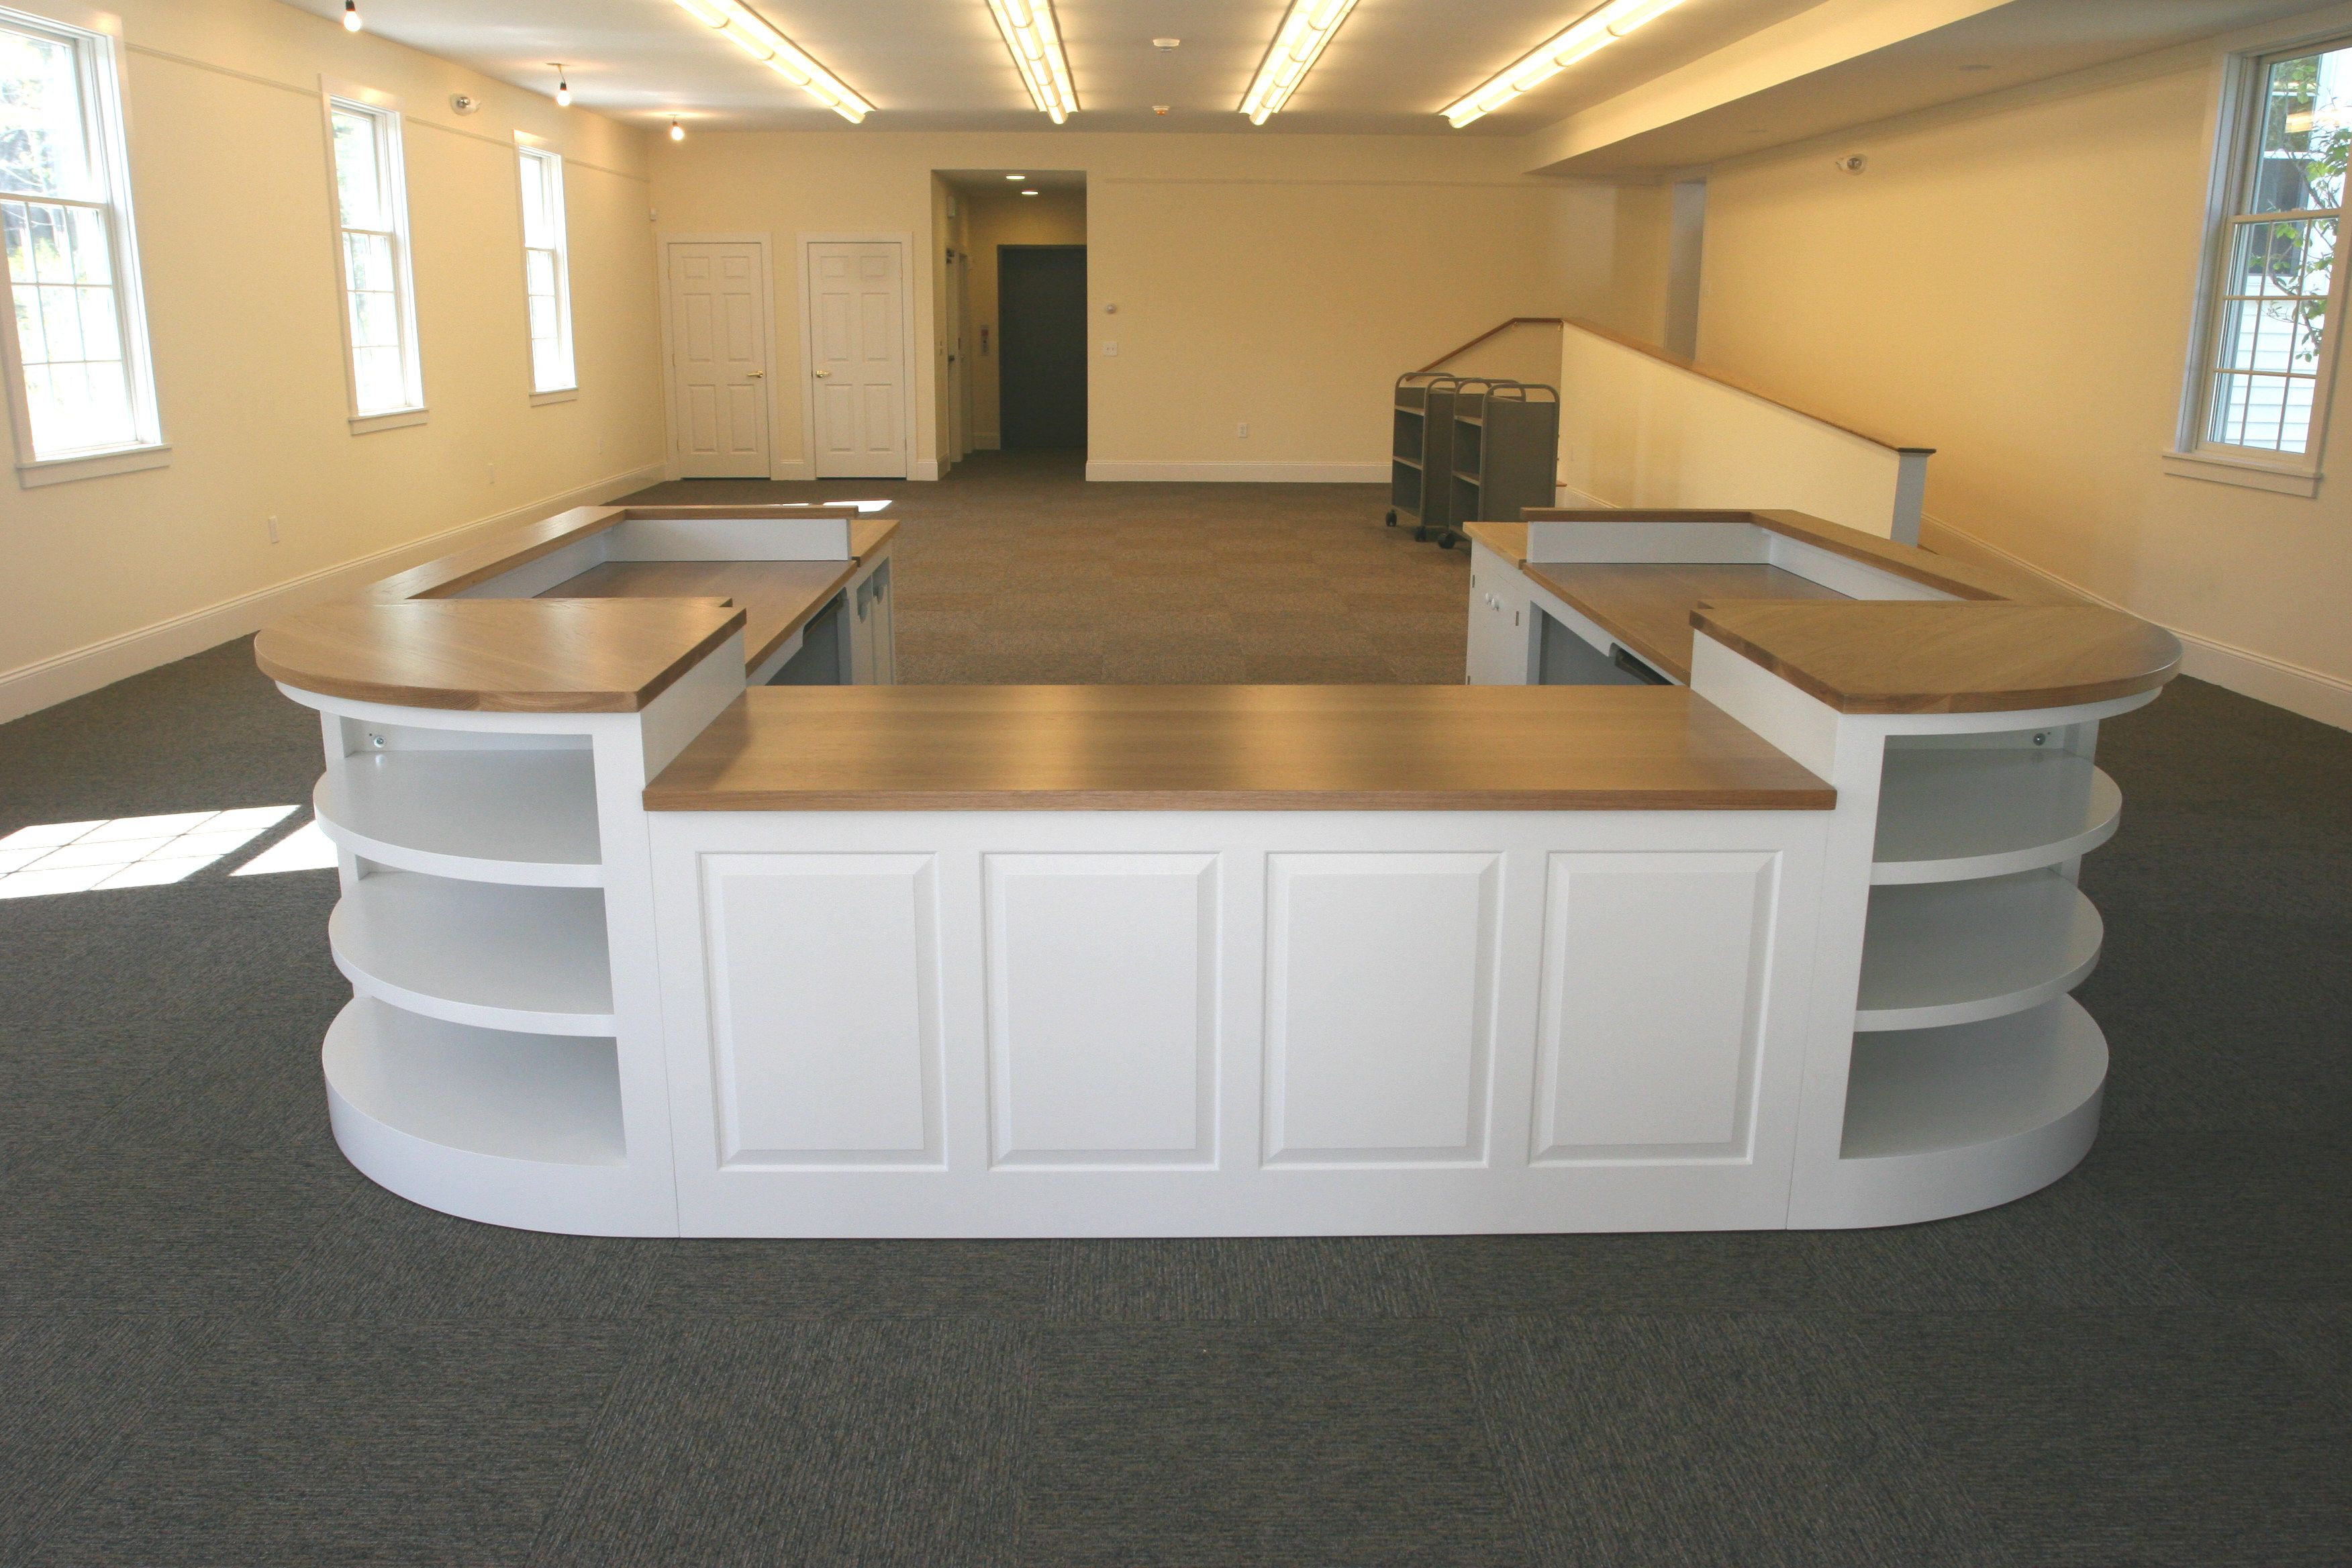 circulation desks southport library circulation desk - Library Circulation Desk Design